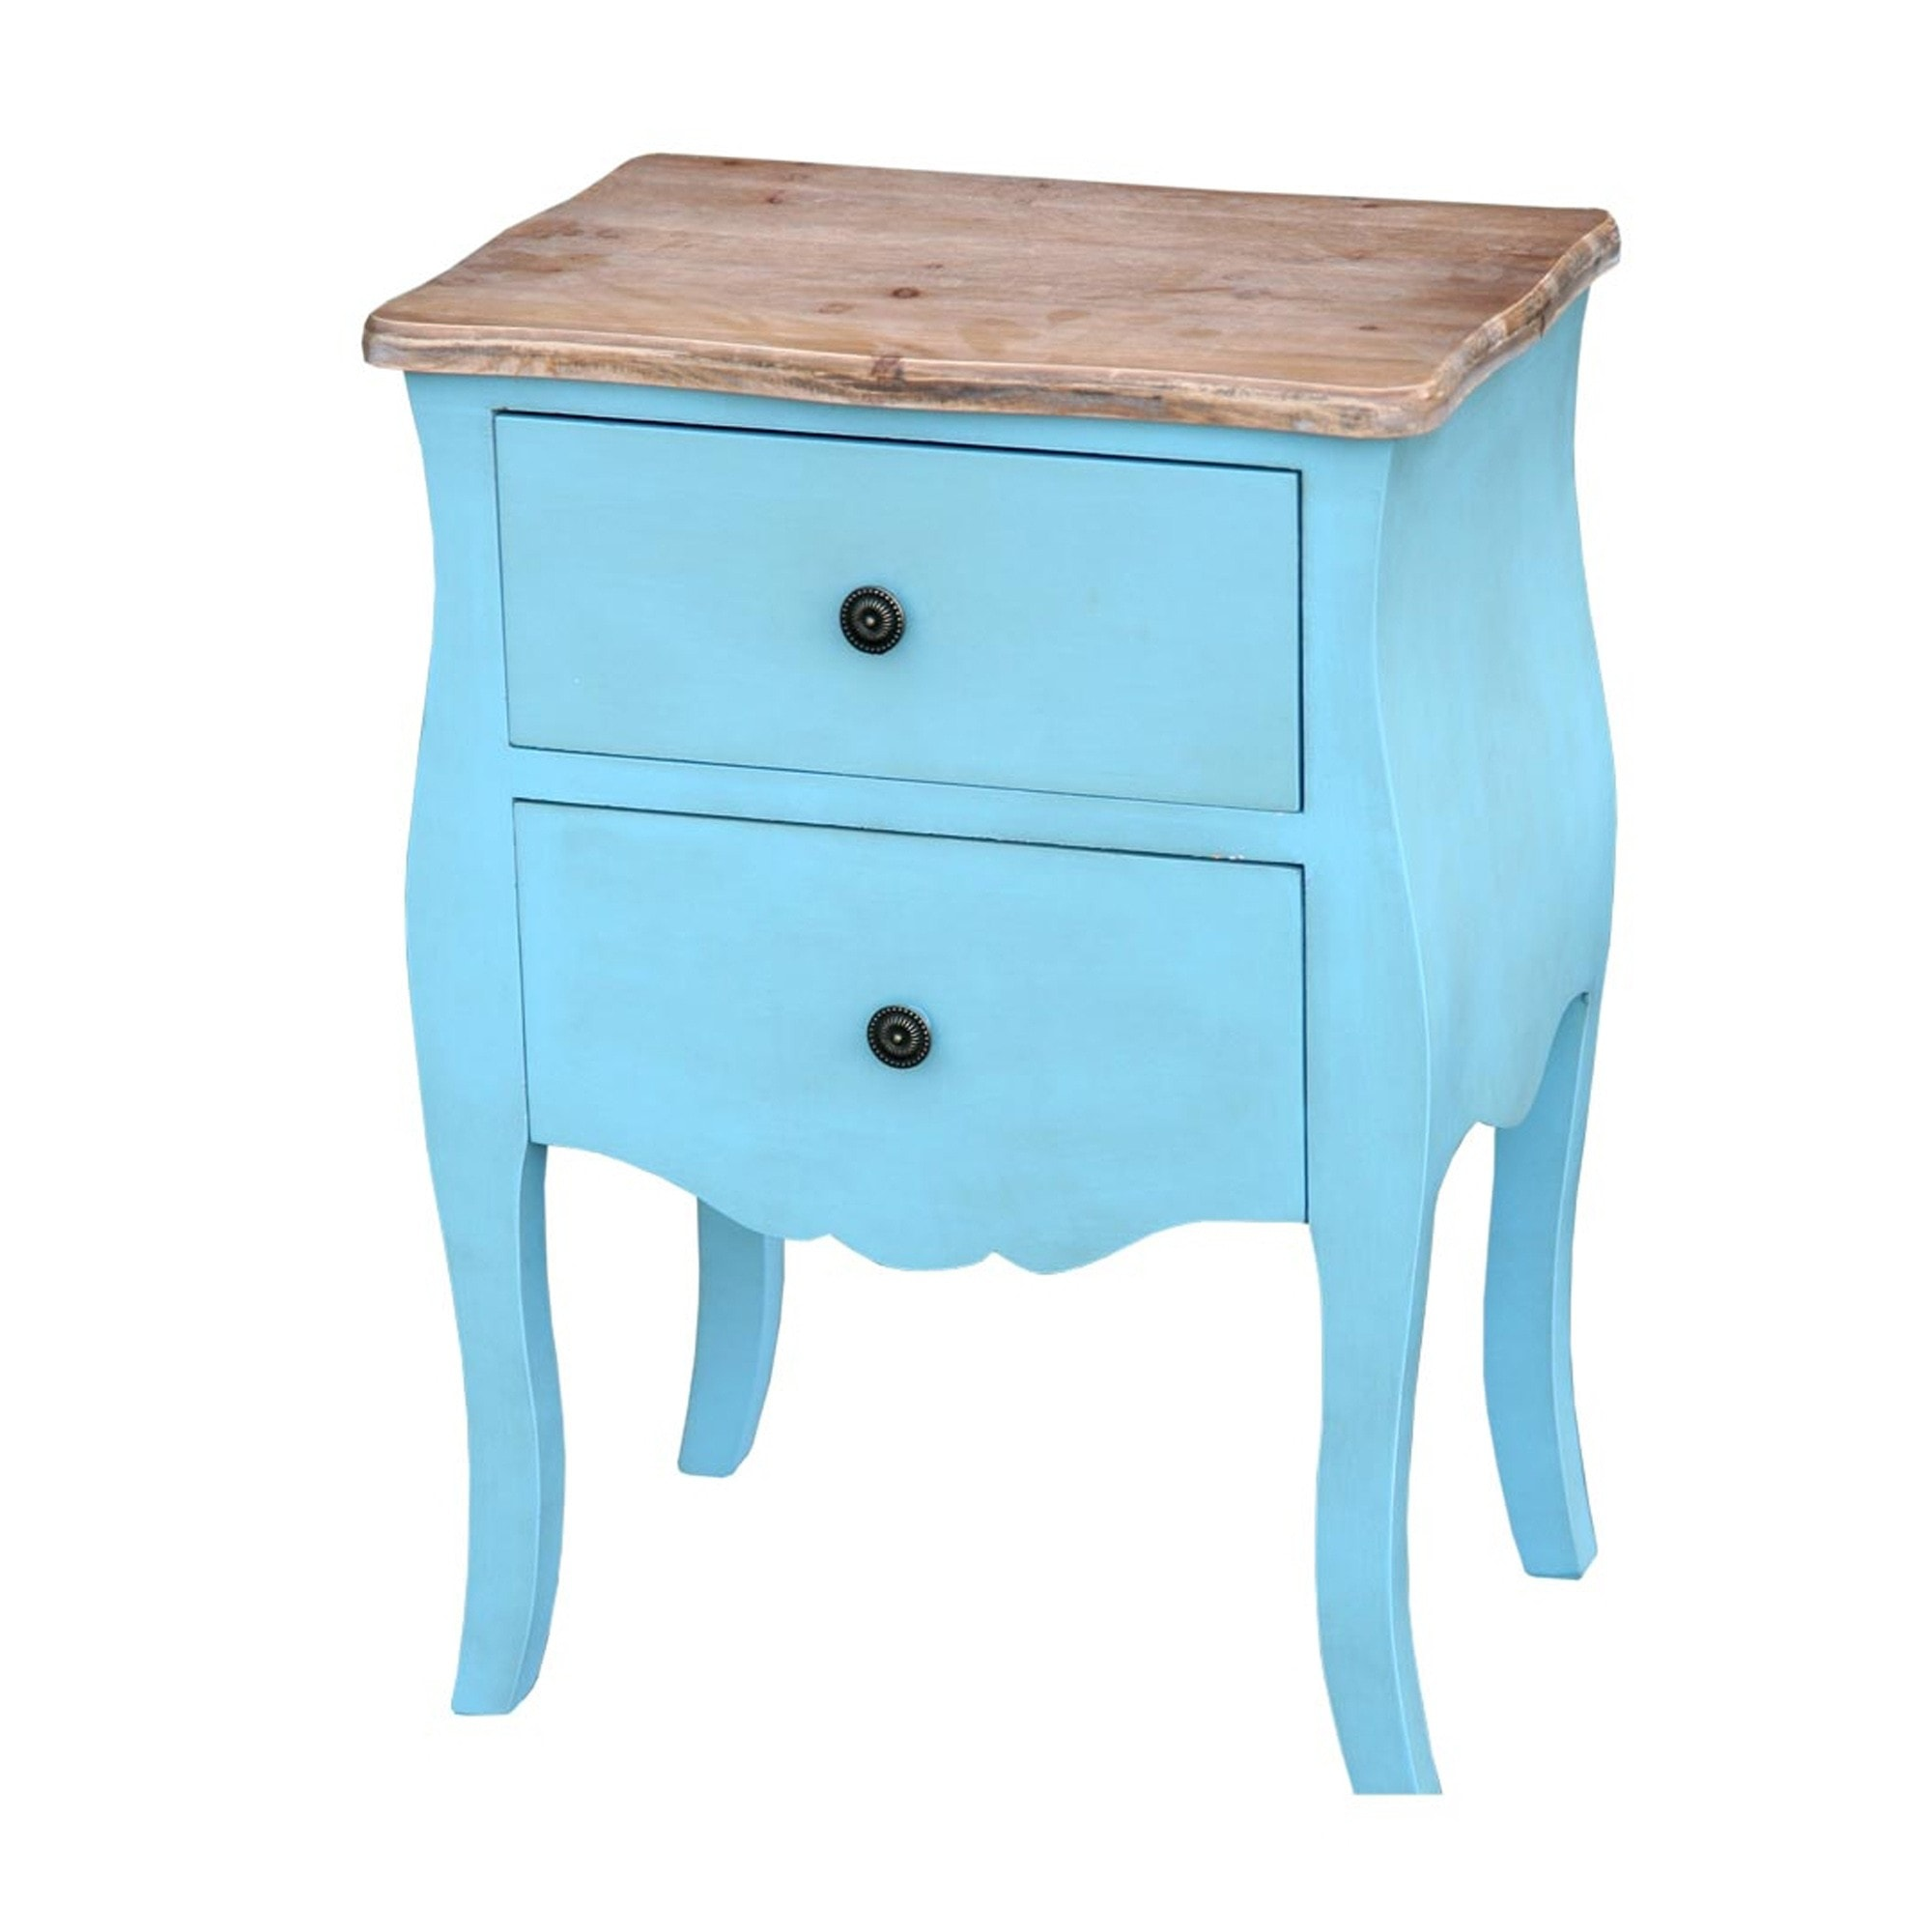 Antique Blue Transylvania Bedside Table Blue Bedside Table